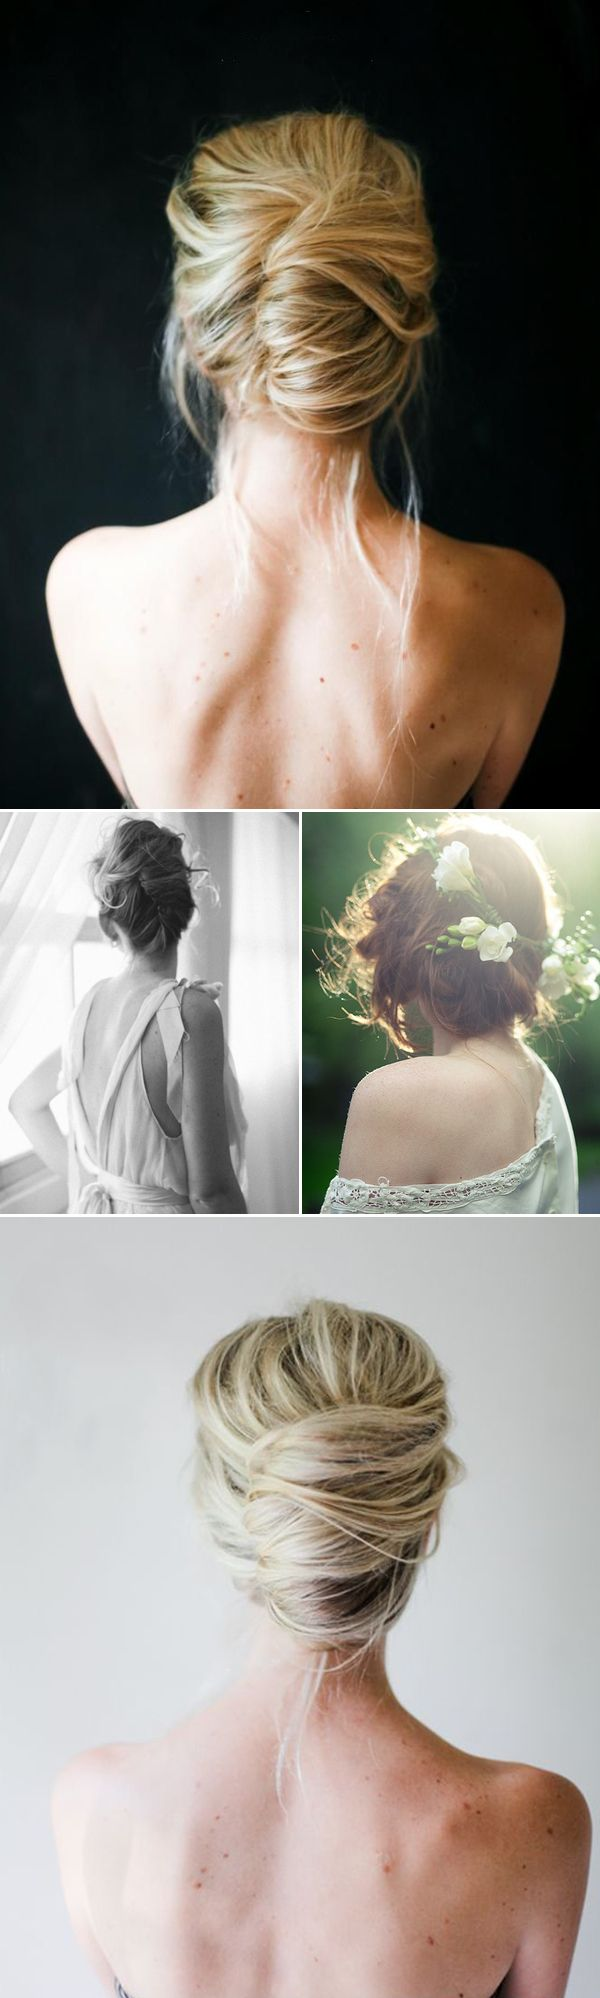 If you know you want to wear an elegant updo on your wedding day, but still haven't found the ideal look, today's post will help you narrow it down even further. A great looking updo not only gives you the most desired bridal look, but also enhances your facial features and unique style. Get inspired …